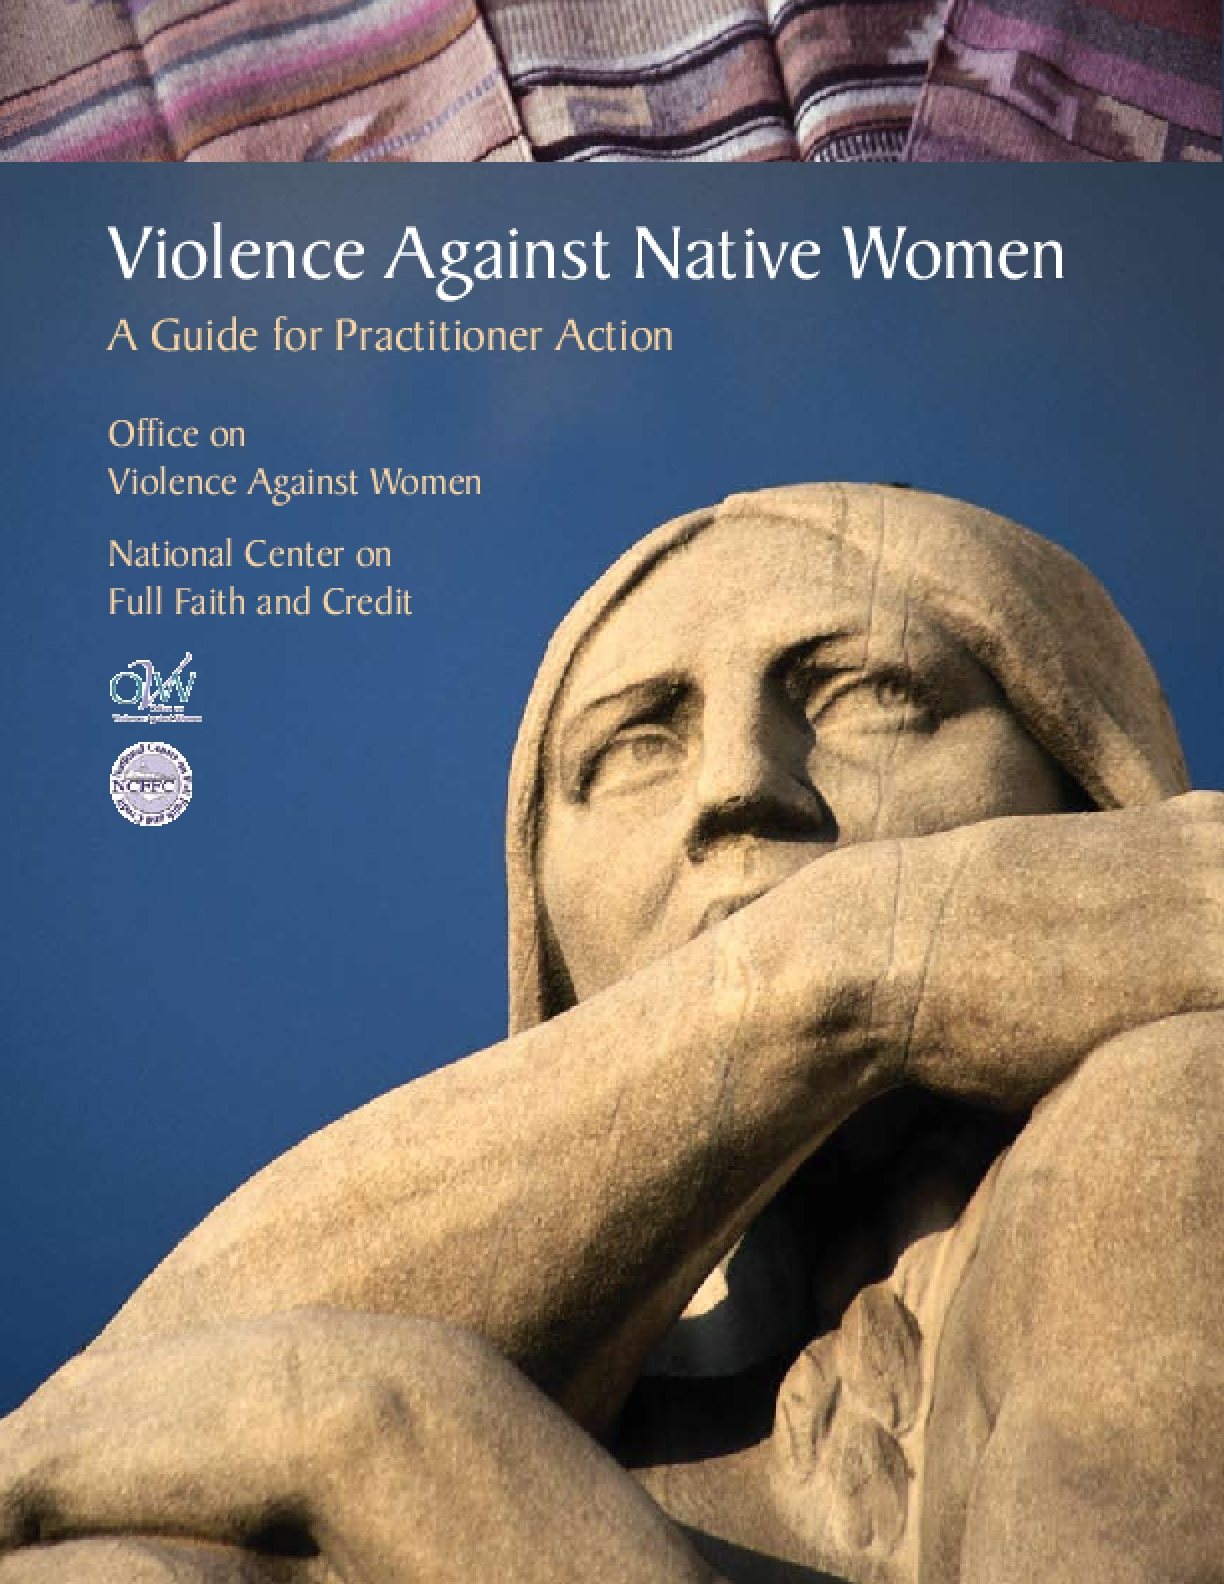 Violence Against Native Women: A Guide for Practitioner Action